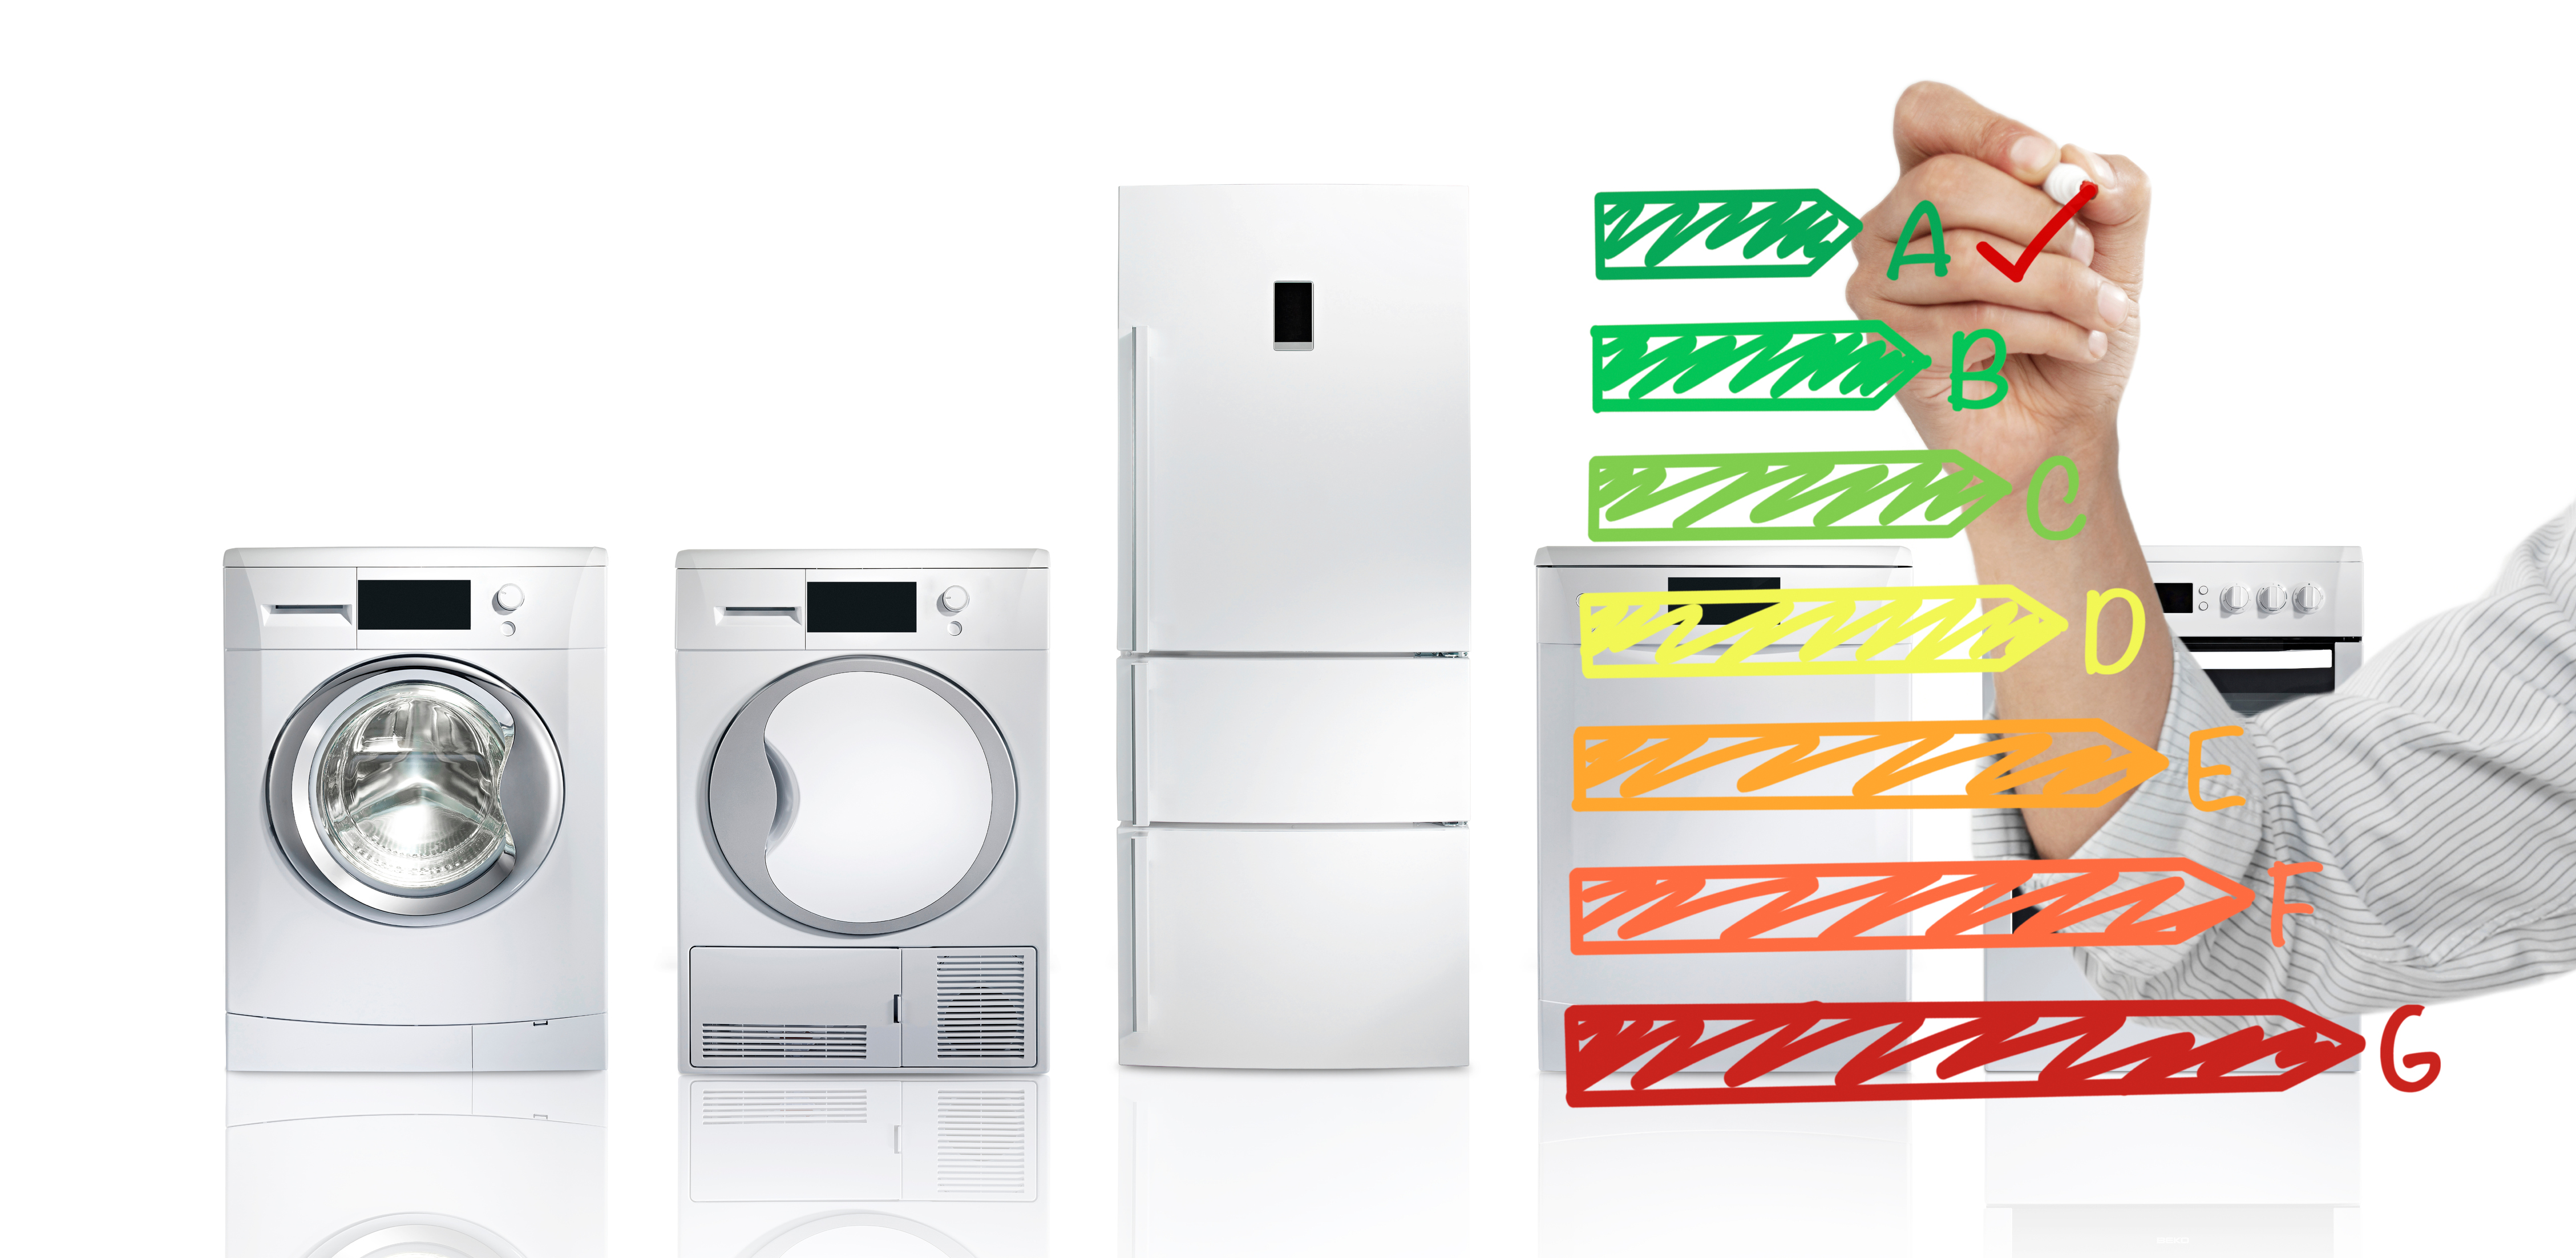 energy efficient appliances with energy label overlay